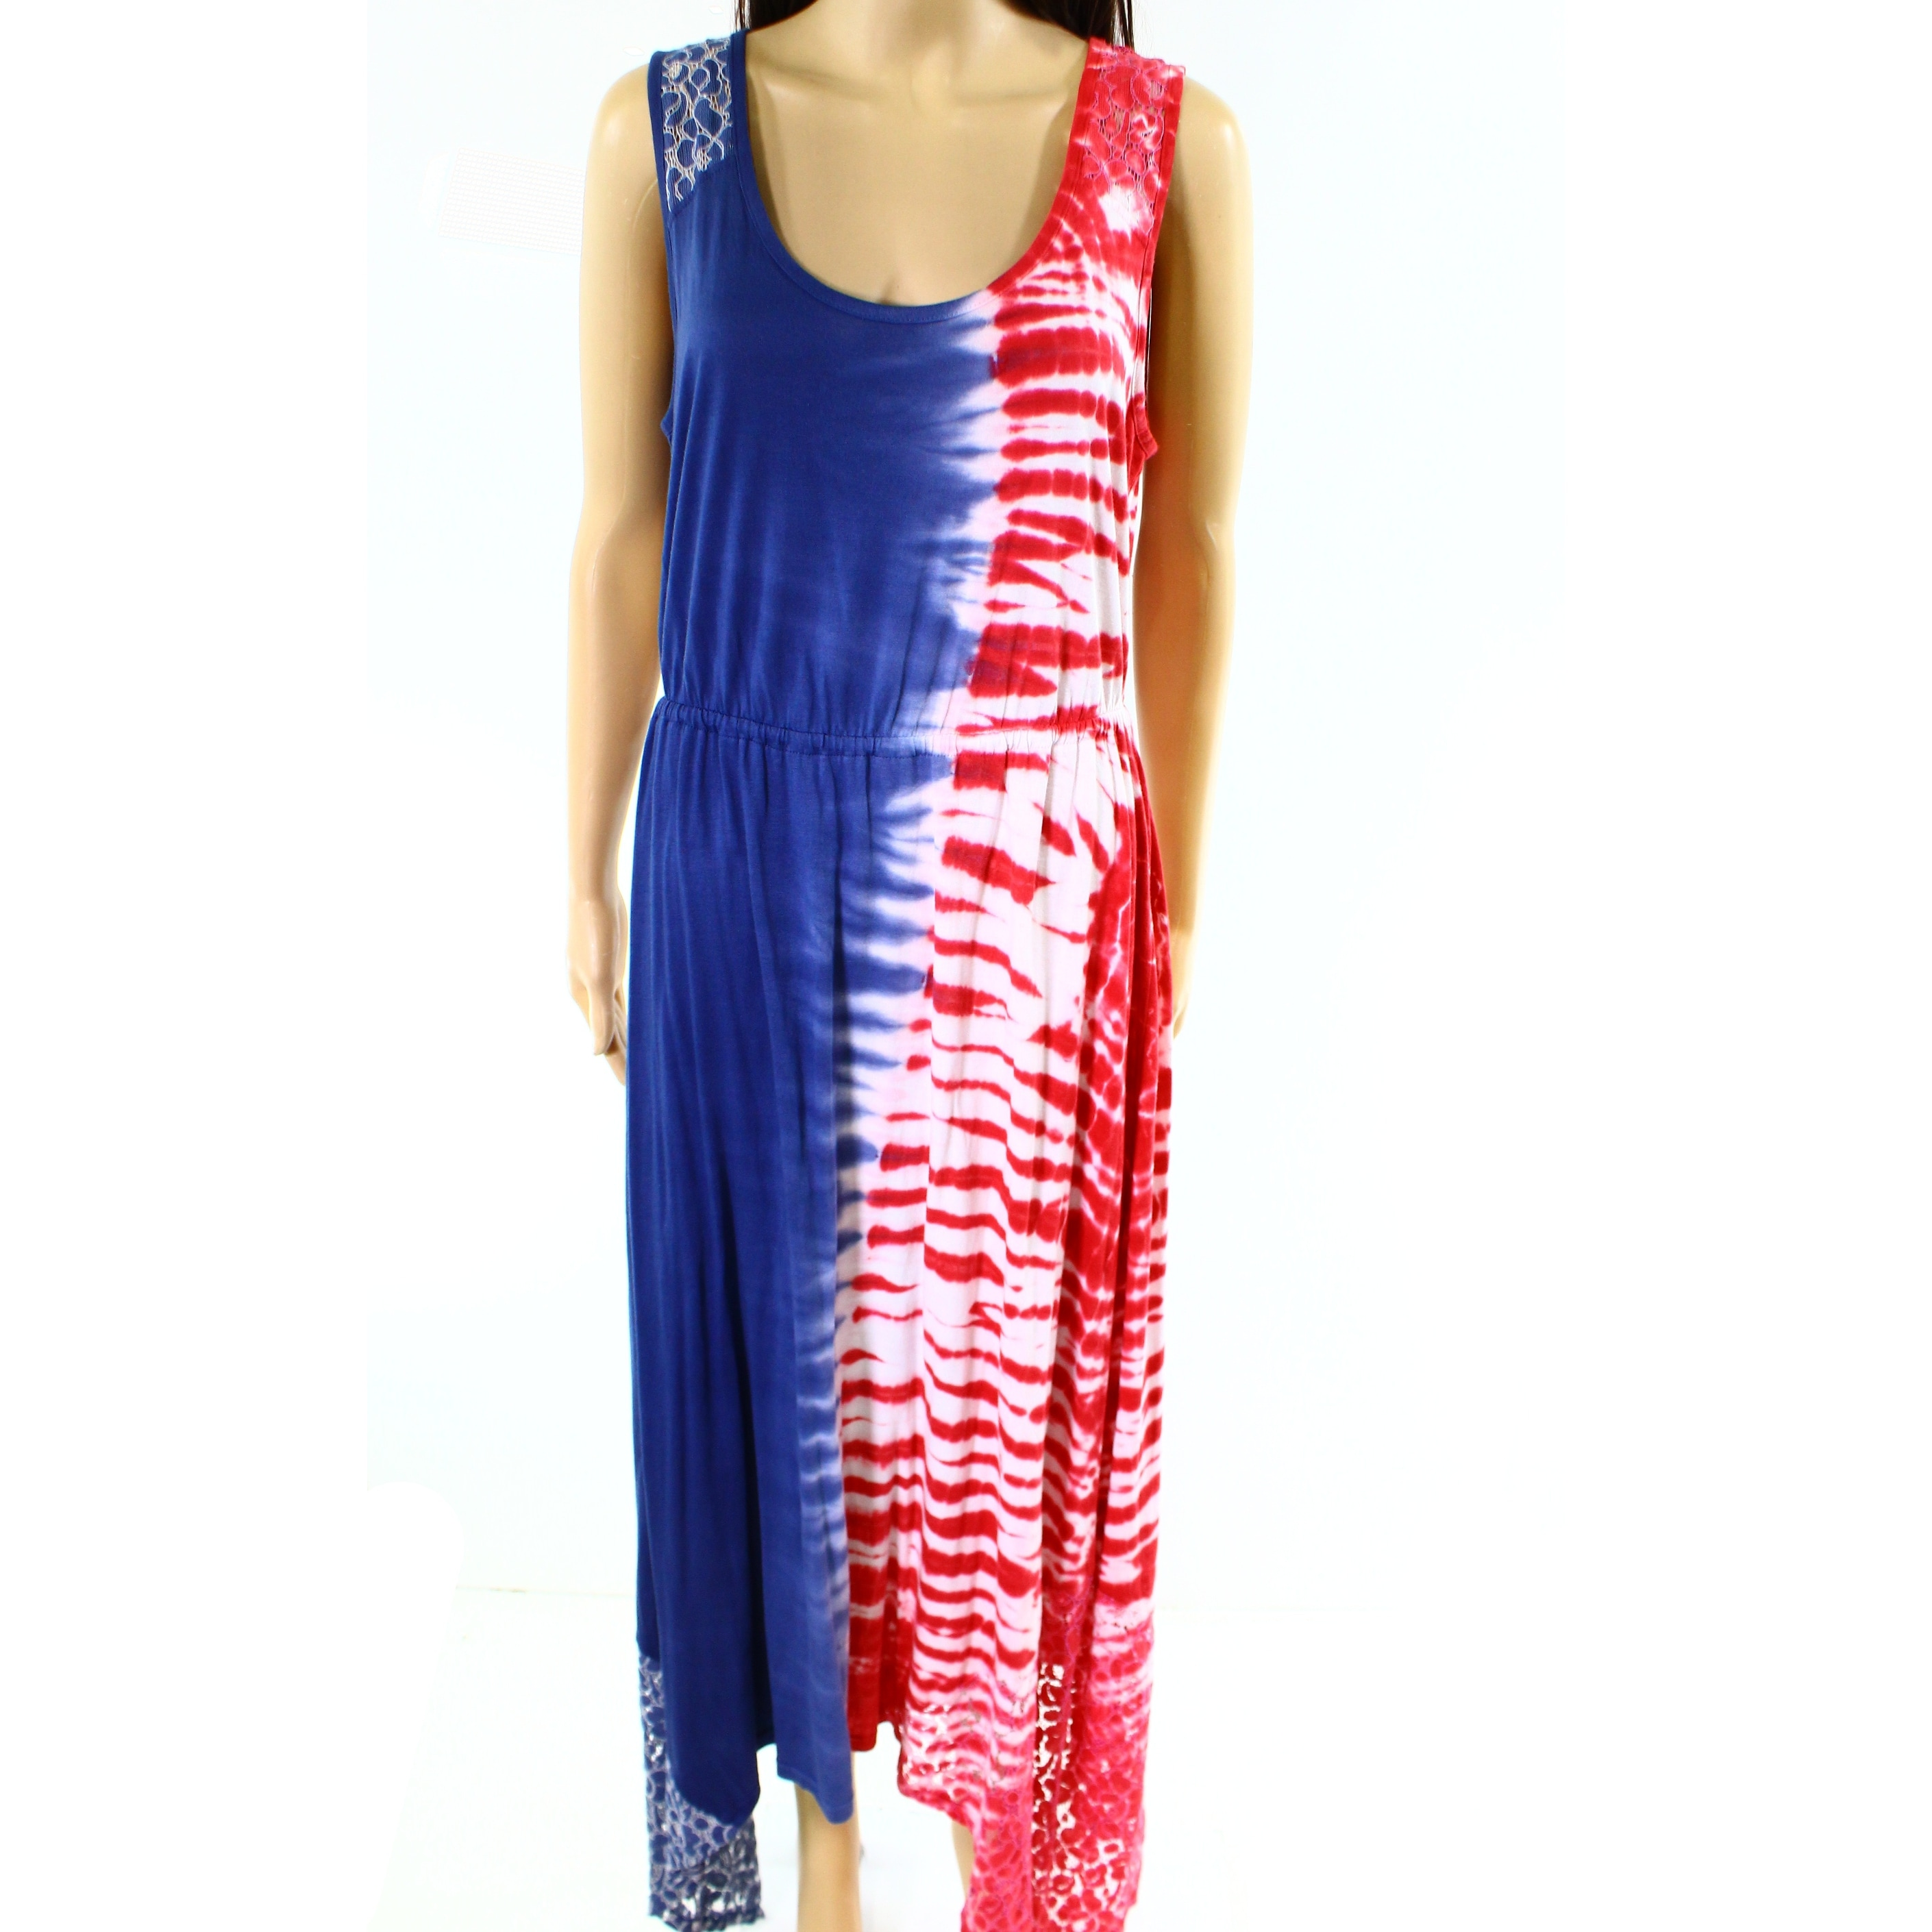 0be1fcd2e0b42 Shop One world NEW Red White Womens Size Large L Lace-Detail Maxi Dress -  Free Shipping On Orders Over $45 - Overstock - 20534479